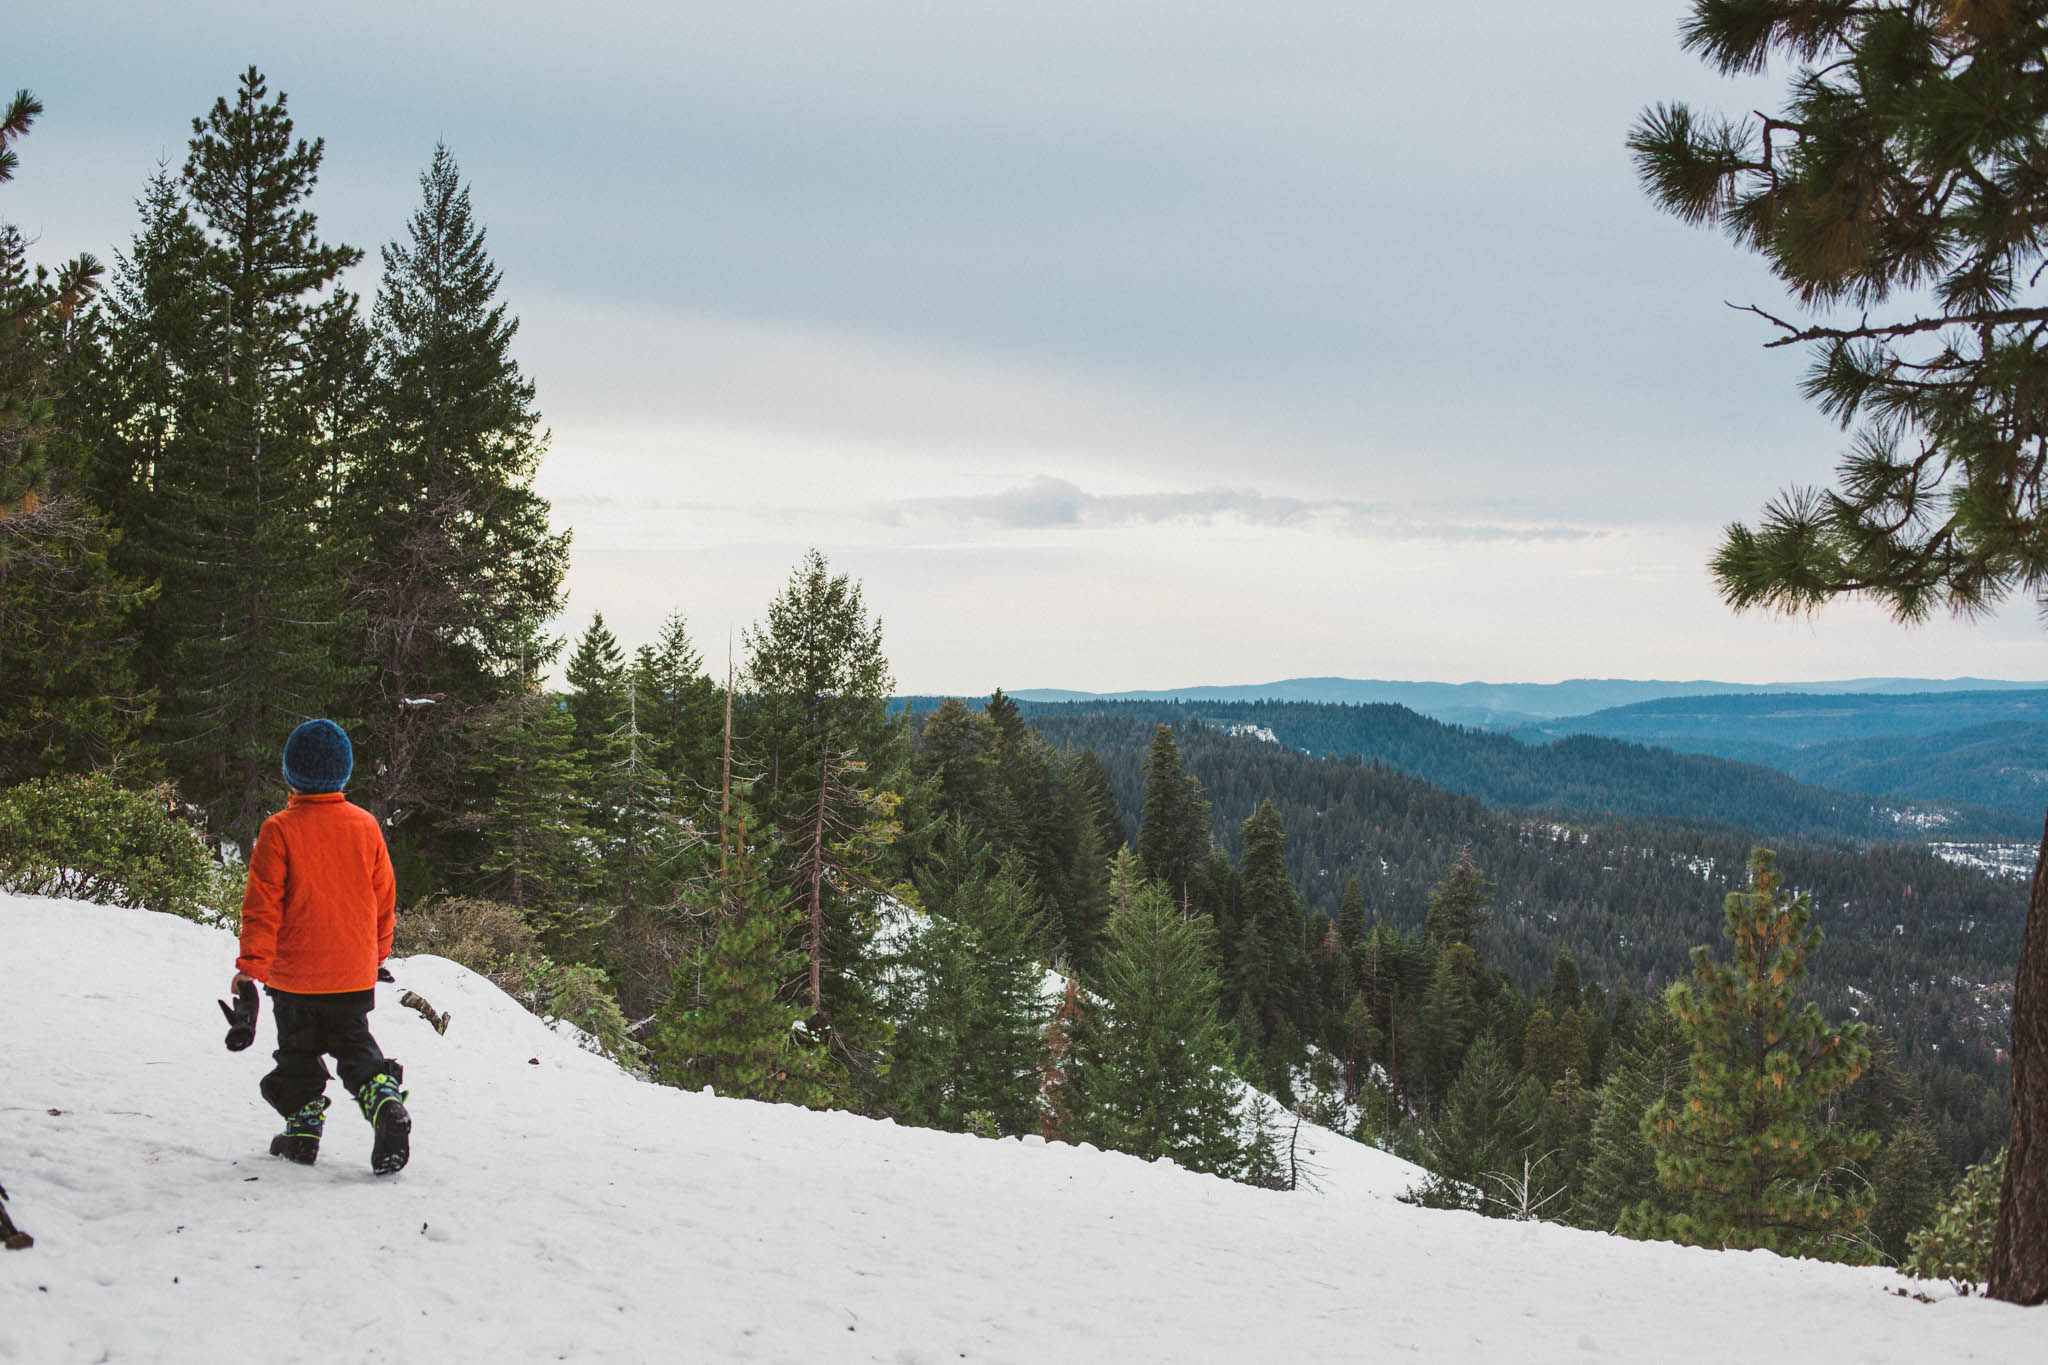 A boy and a snowy vista in the Sierra Foothills